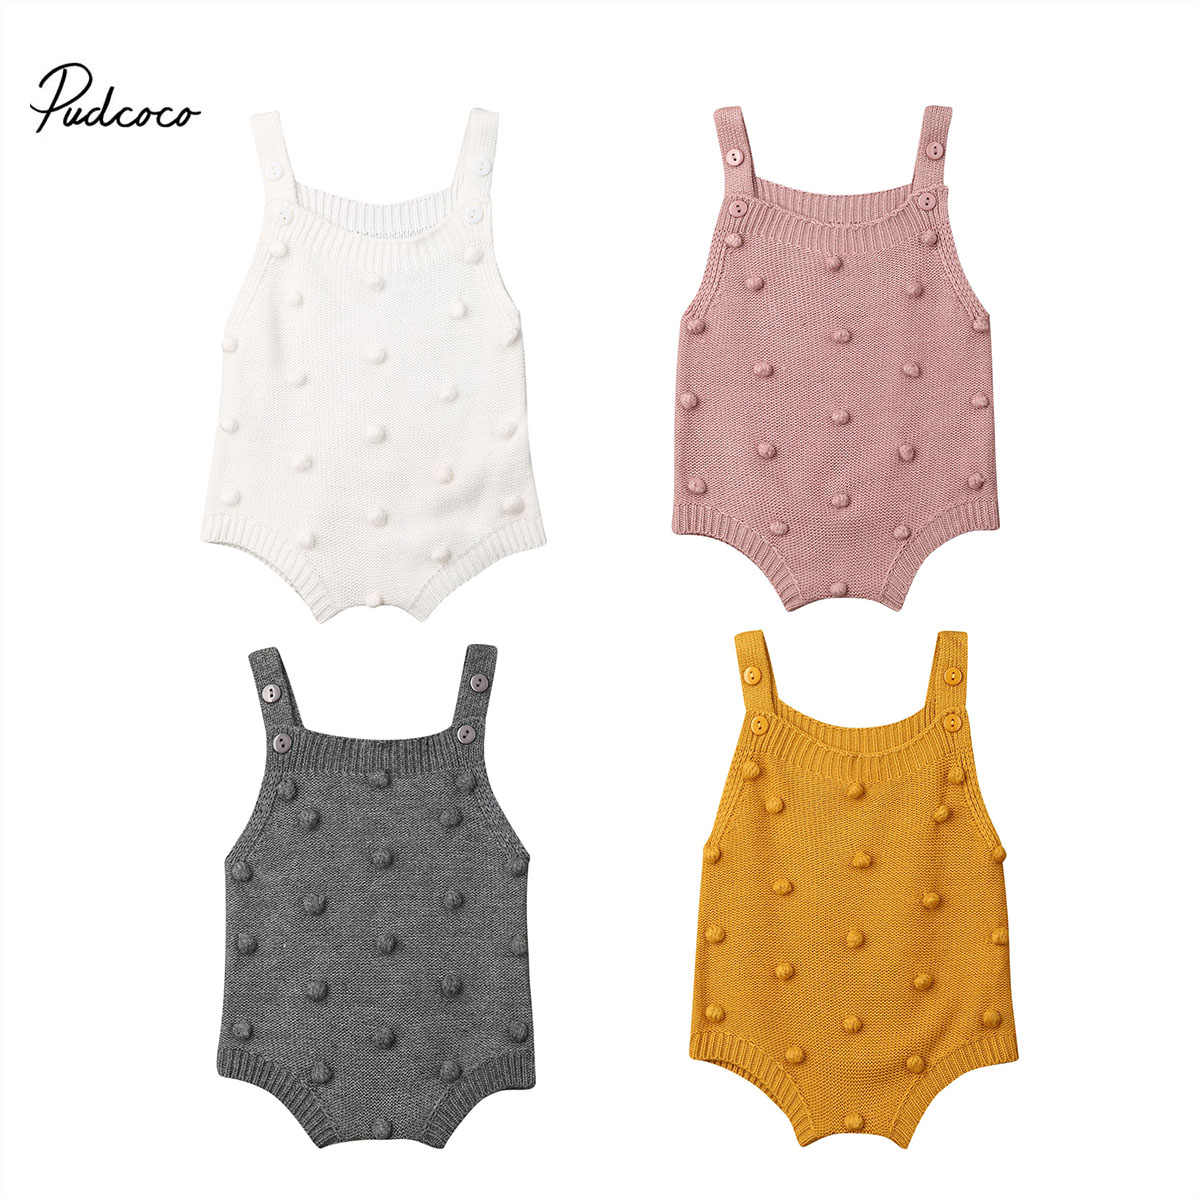 2019 Baby Spring Autumn Clothing Infant Newborn Baby Boy Girl Knit Dots Jumpsuit Solid Bodysuit Cotton Clothes Sleeveless Outfit